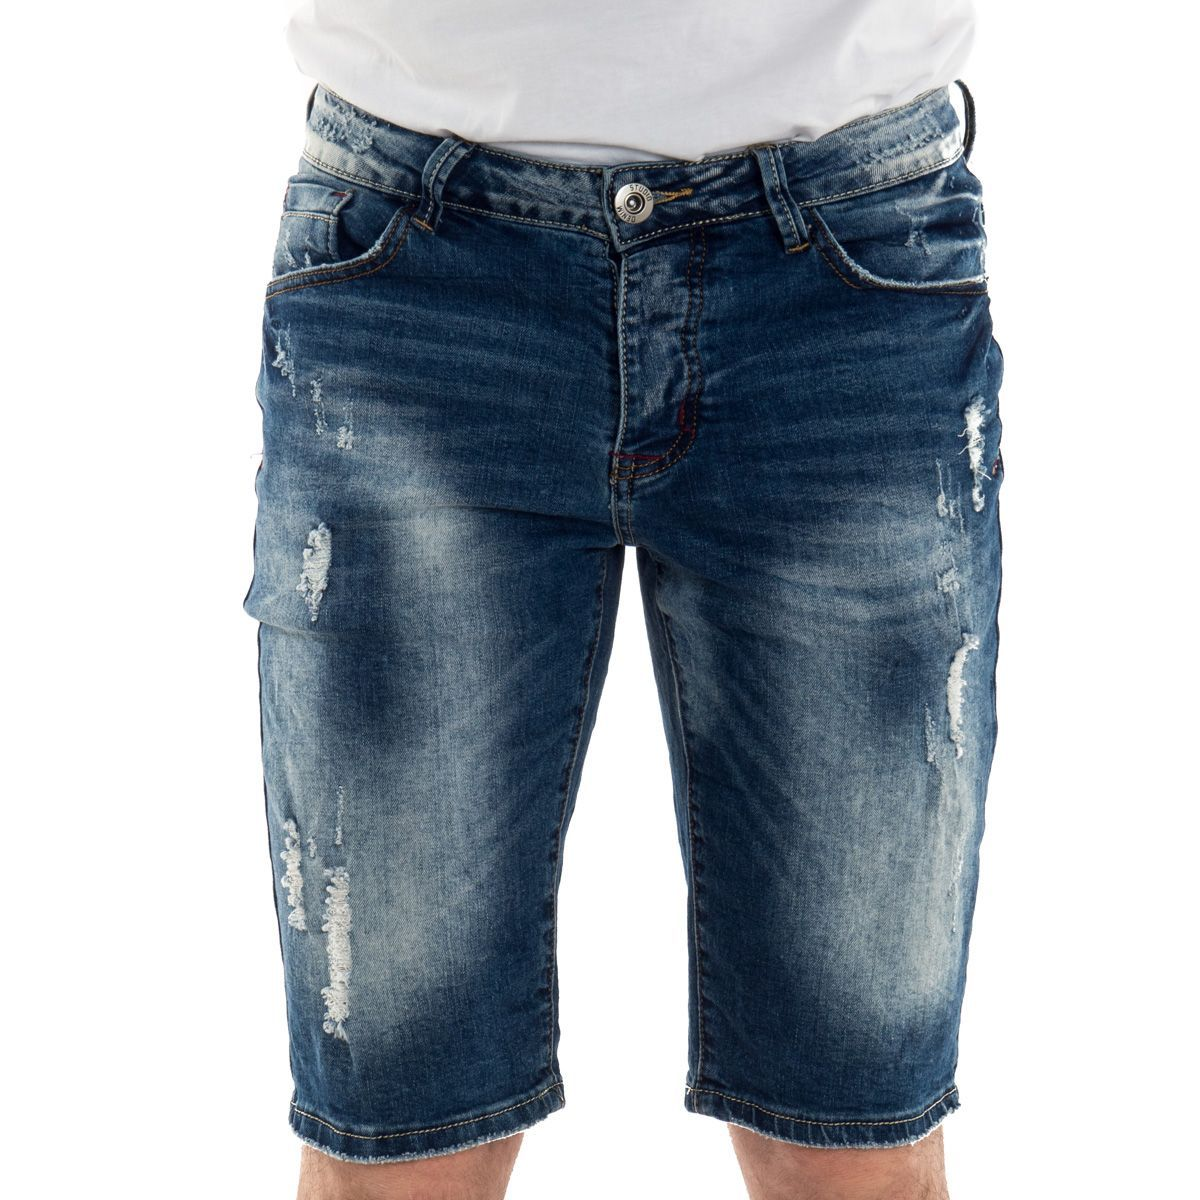 clothing Shorts men Bermuda LPHM1022 LANDEK PARK Cafedelmar Shop